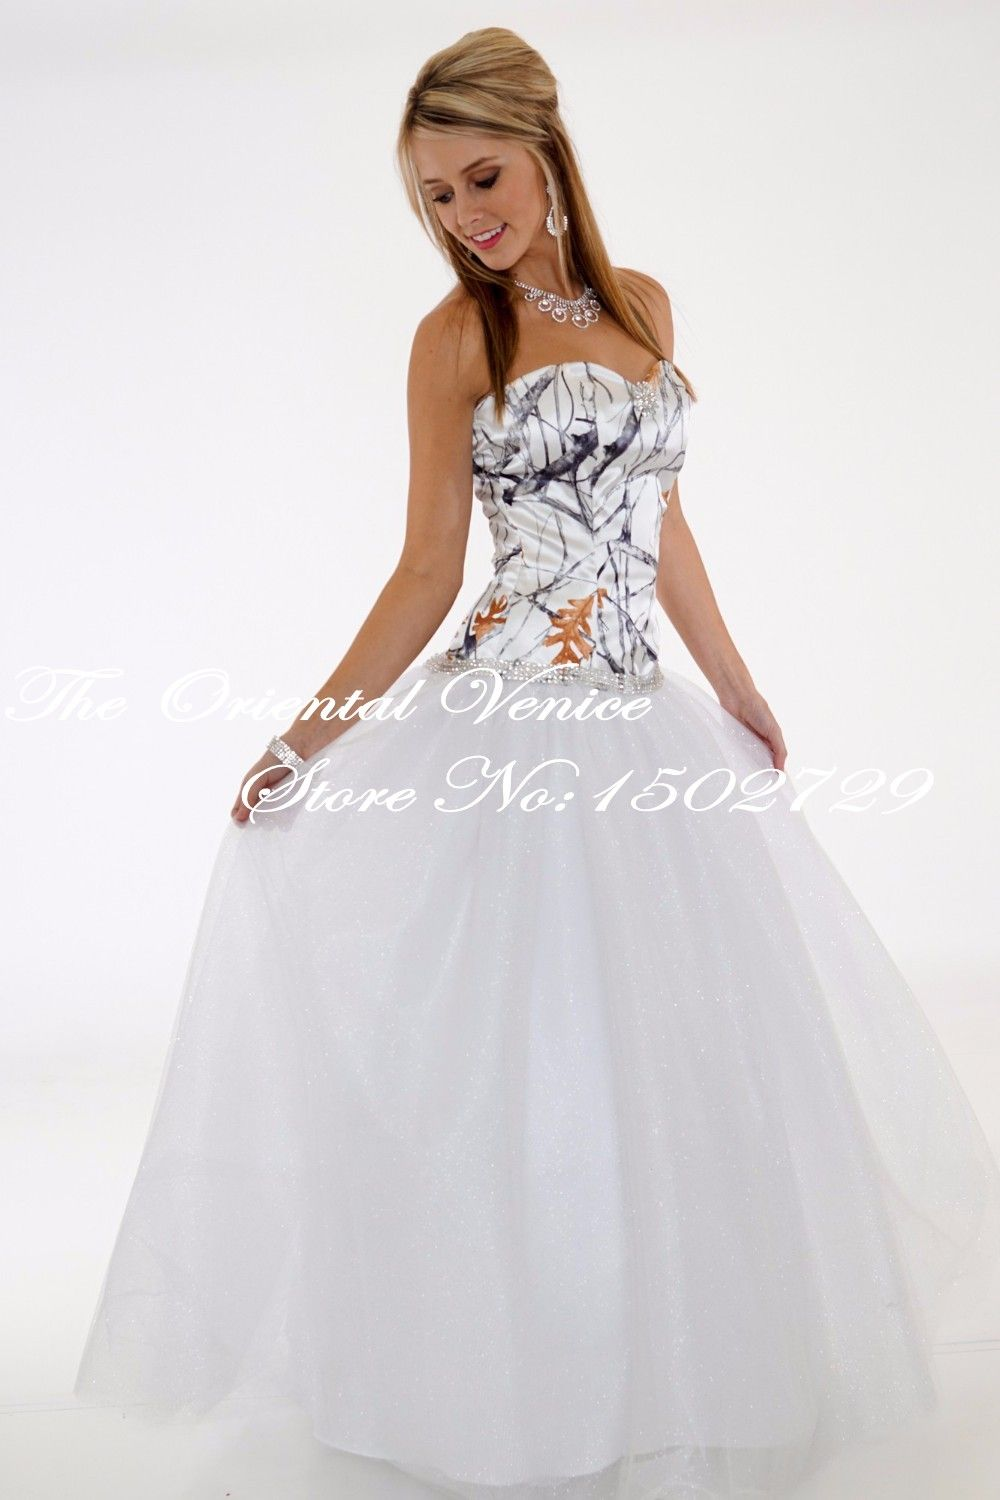 Free shipping 2017 true timber snowfall camouflage wedding gowns free shipping 2017 true timber snowfall camouflage wedding gowns white camo wedding dress ball gowns bling ombrellifo Image collections